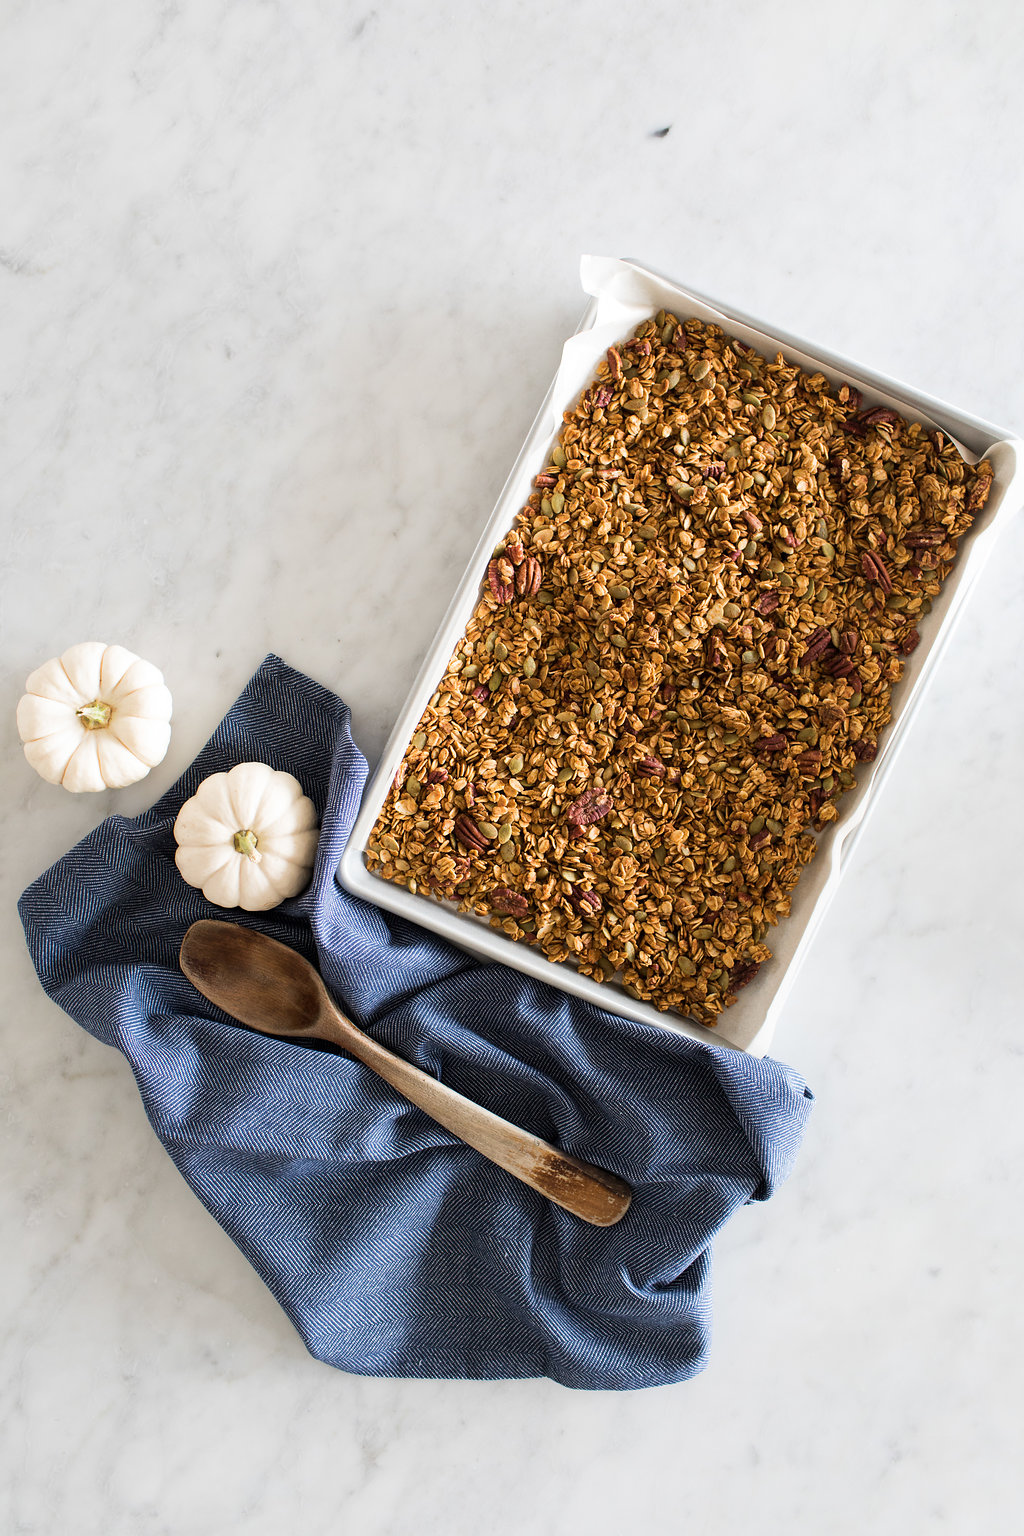 Fraiche Nutrition shows you how to make your own Pumpkin Pecan Granola from scratch!